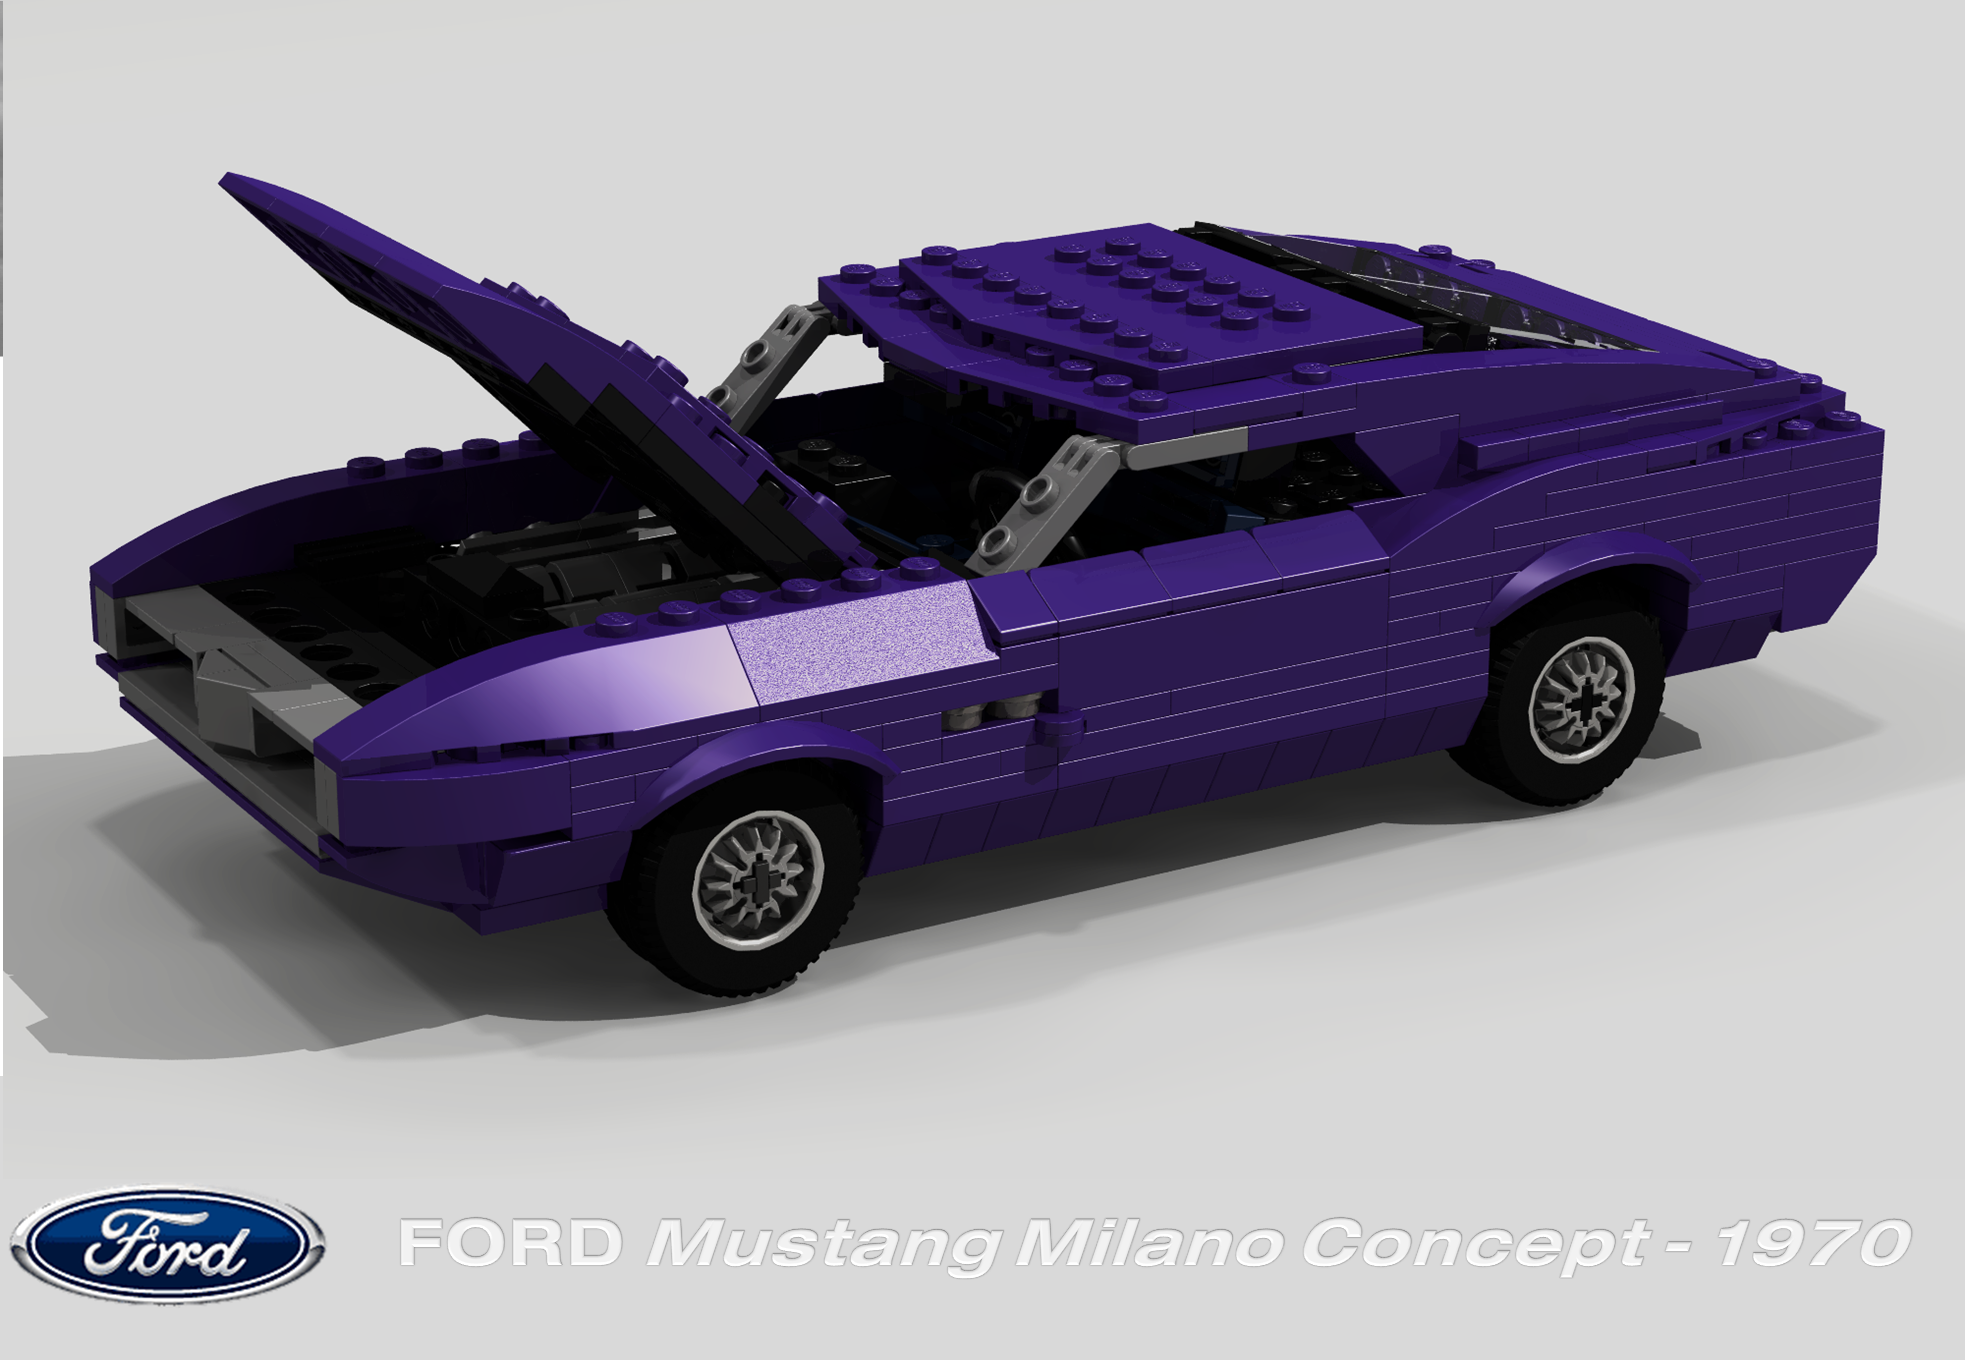 ford_mustang_milano_concept_1970_12.png